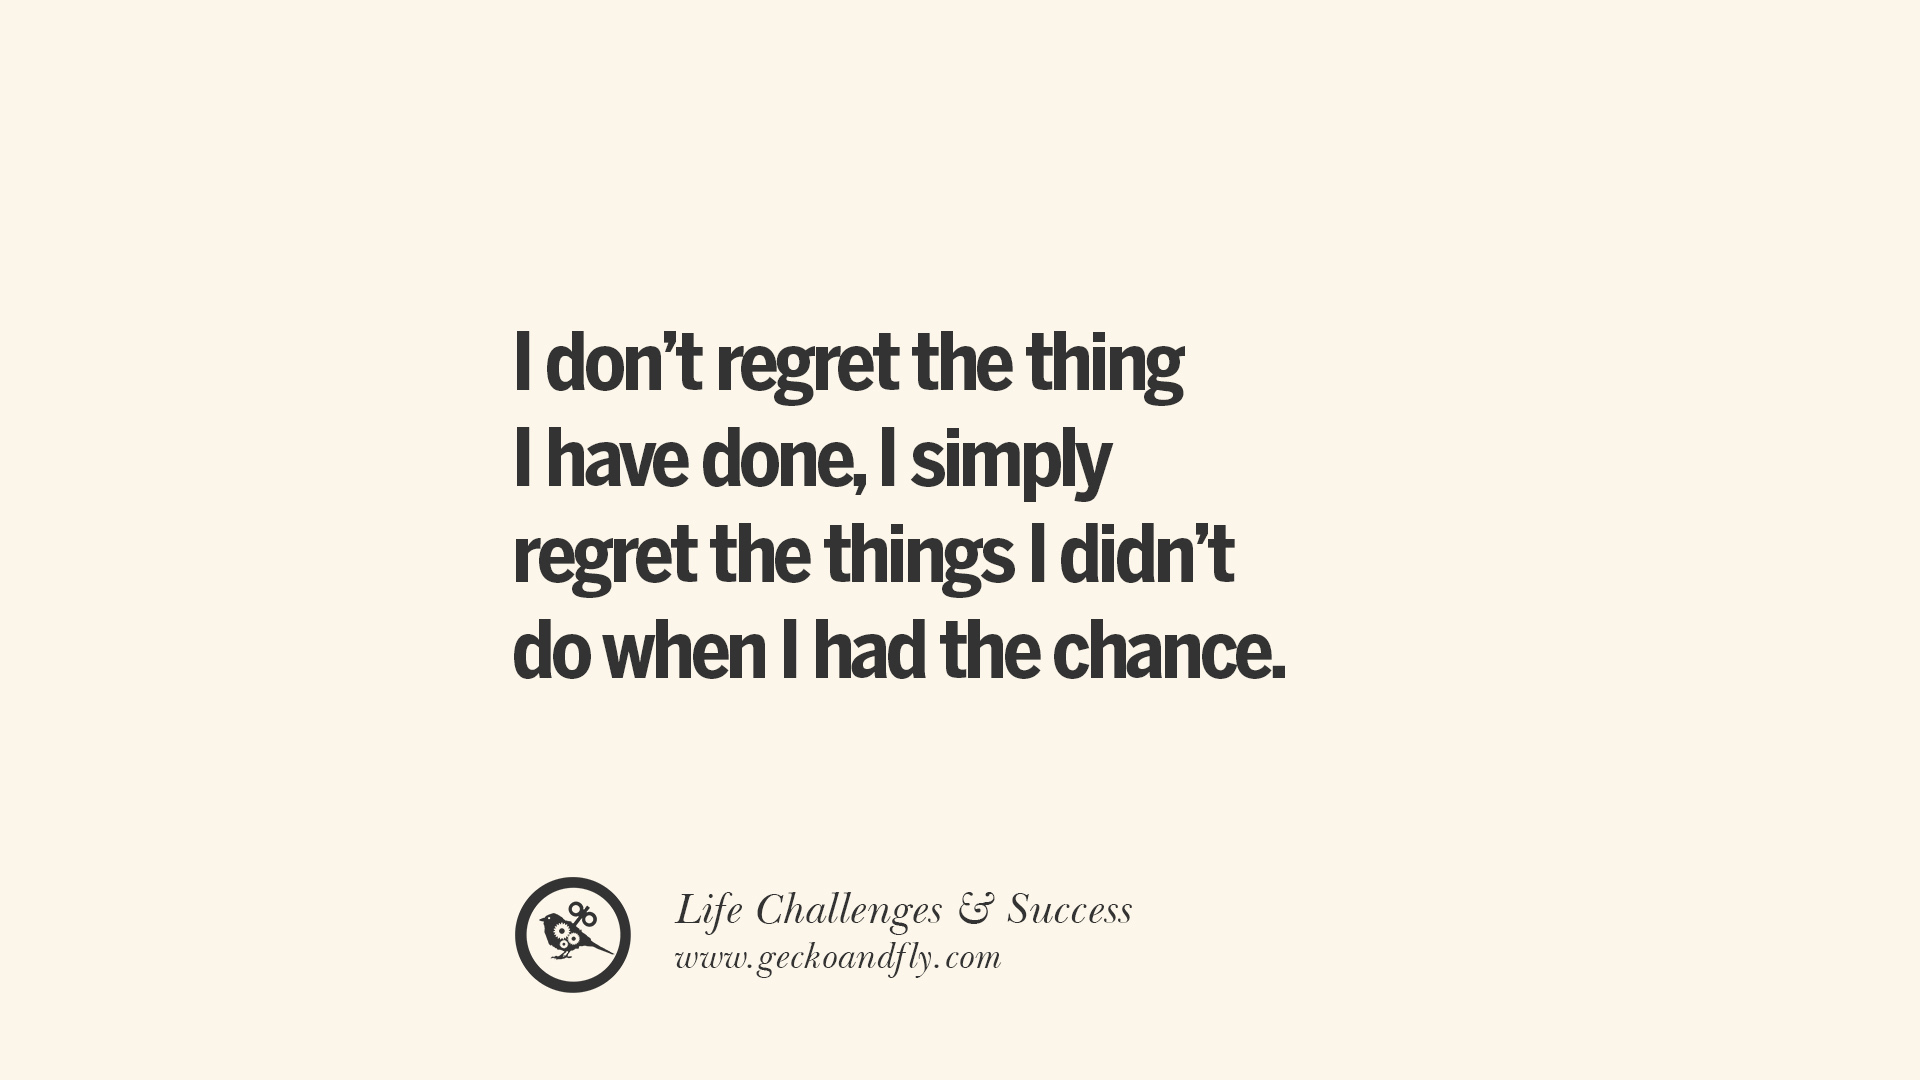 Regret Chance I I Things I Didnt Have Dont Things Do I Regret Done I Had Wen